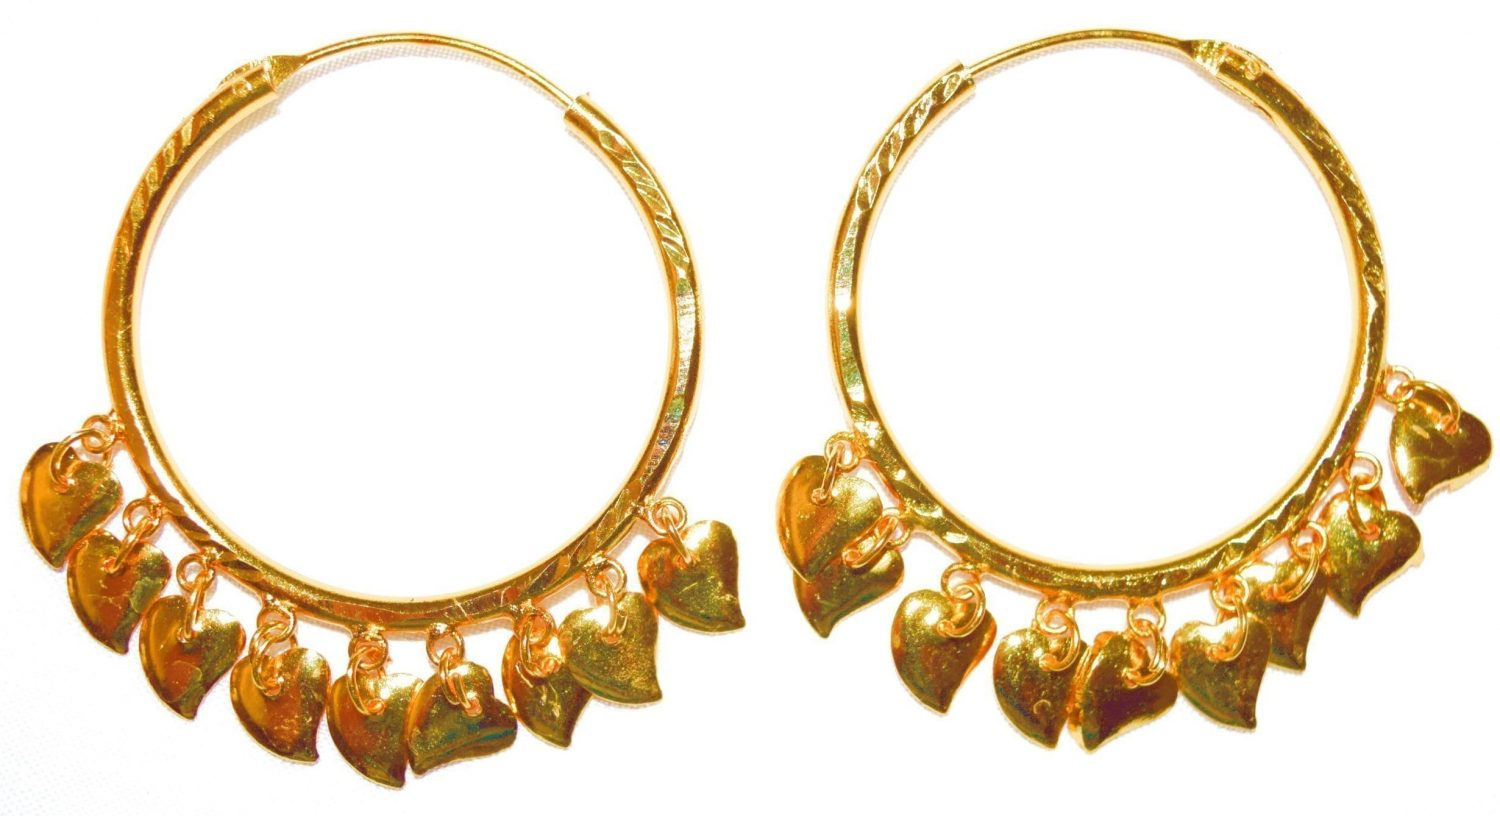 Gold Polished Ear Rings Baliyyan set with Golden Pattiyaan J0122 1